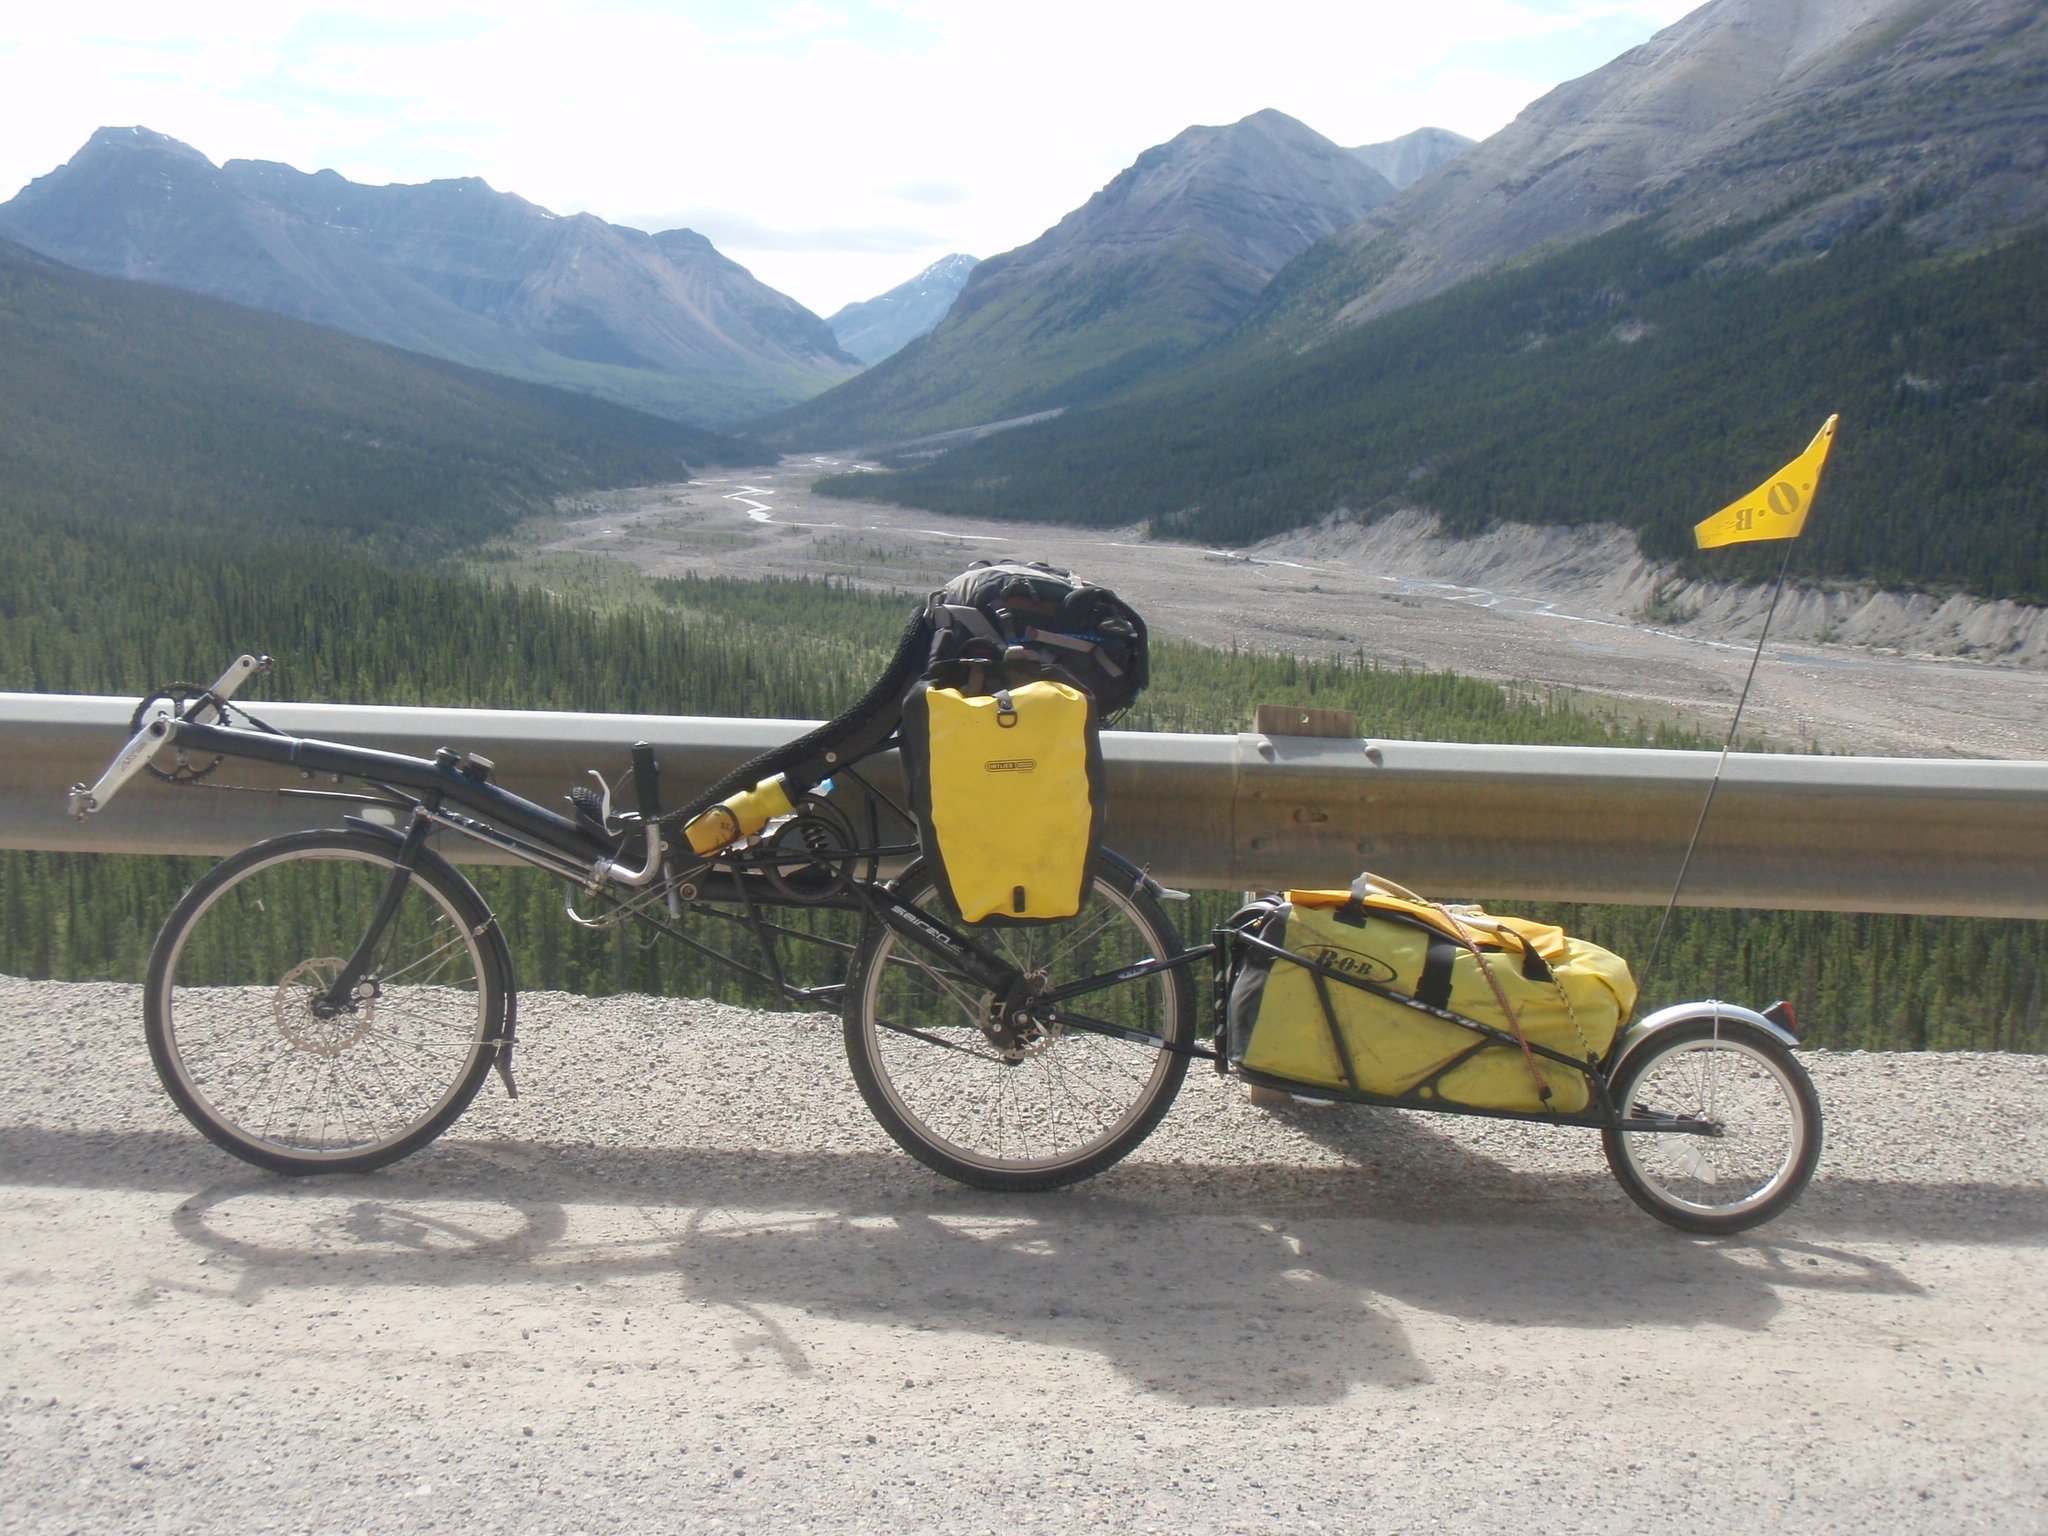 On the way to Summit Pass, the highest point of the Alaska Highway